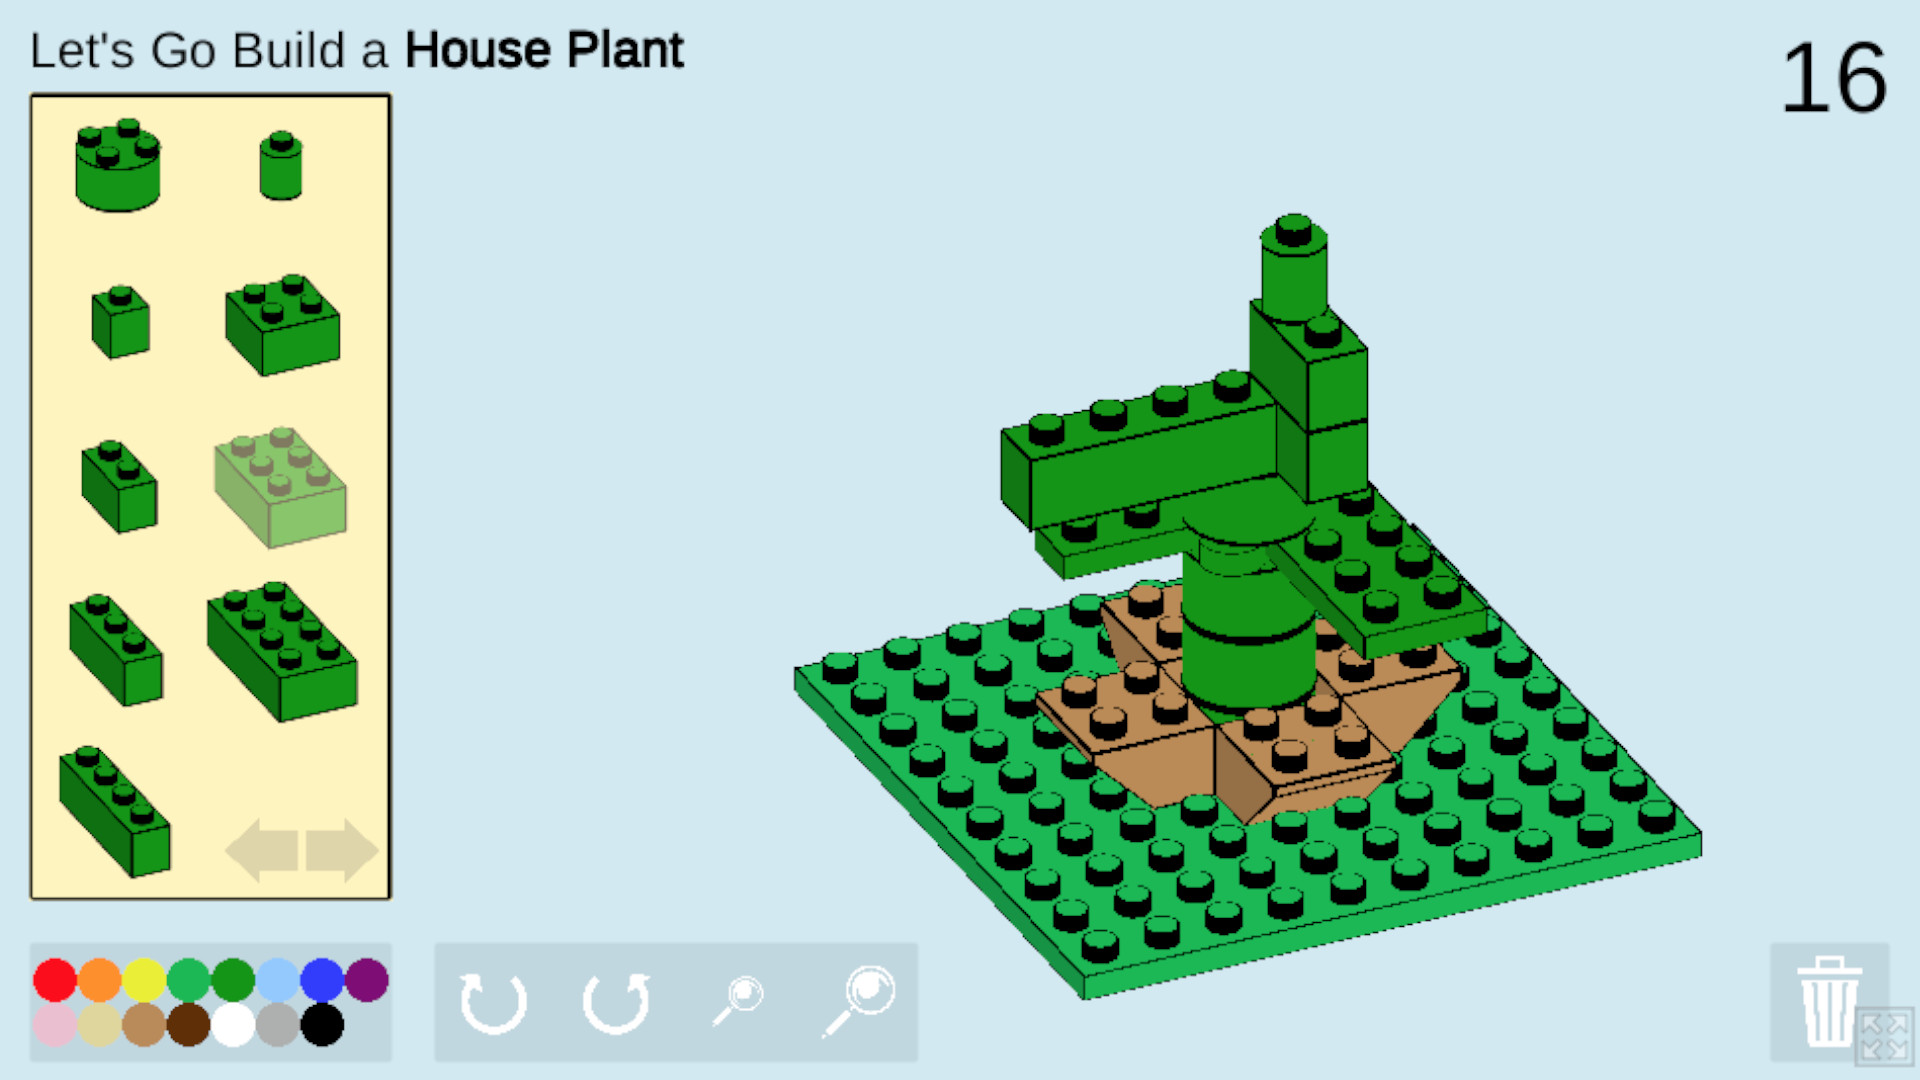 This free browser game gives you a daily Lego build